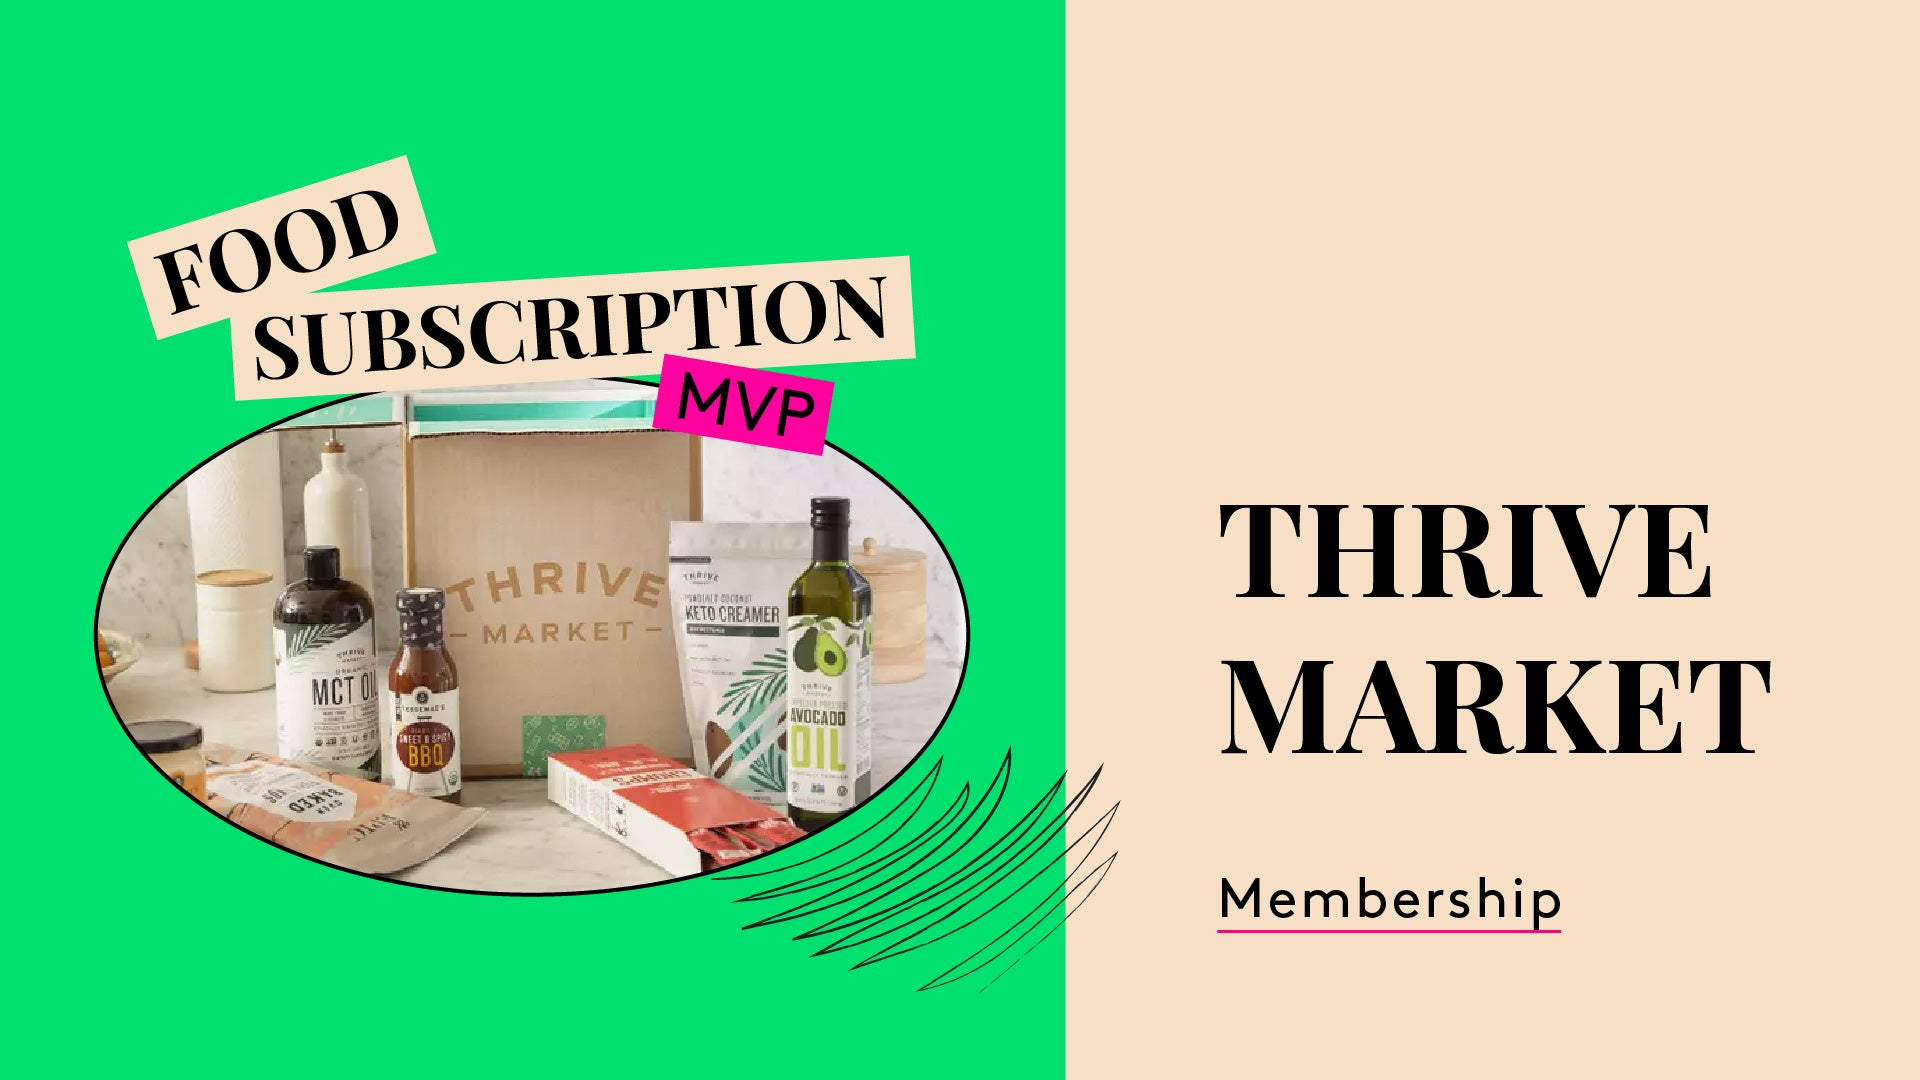 Thrive Market Food Subecription. This is a photo of a membership bundle.